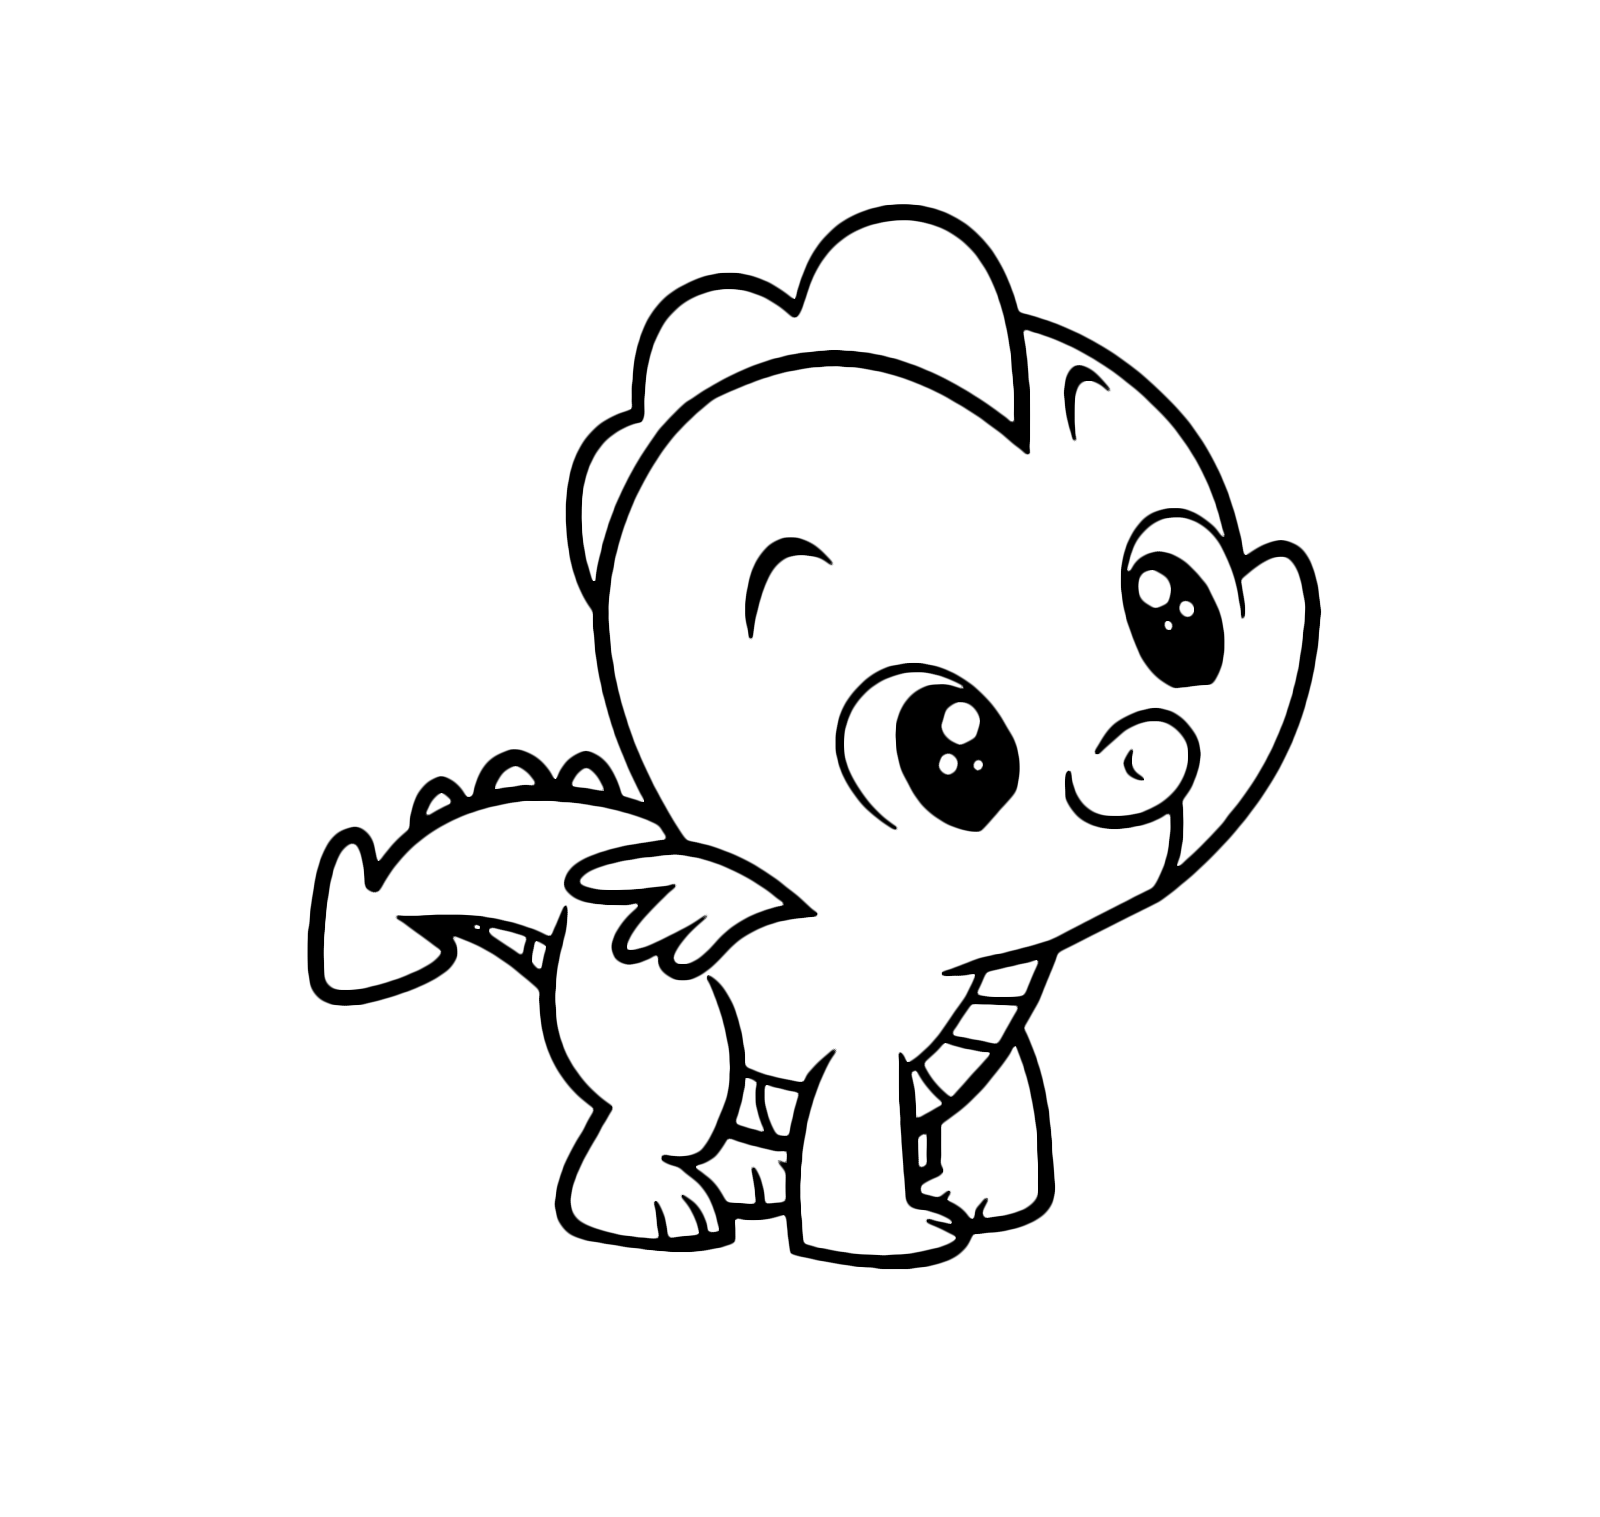 Baby Dragon Spike Coloring page